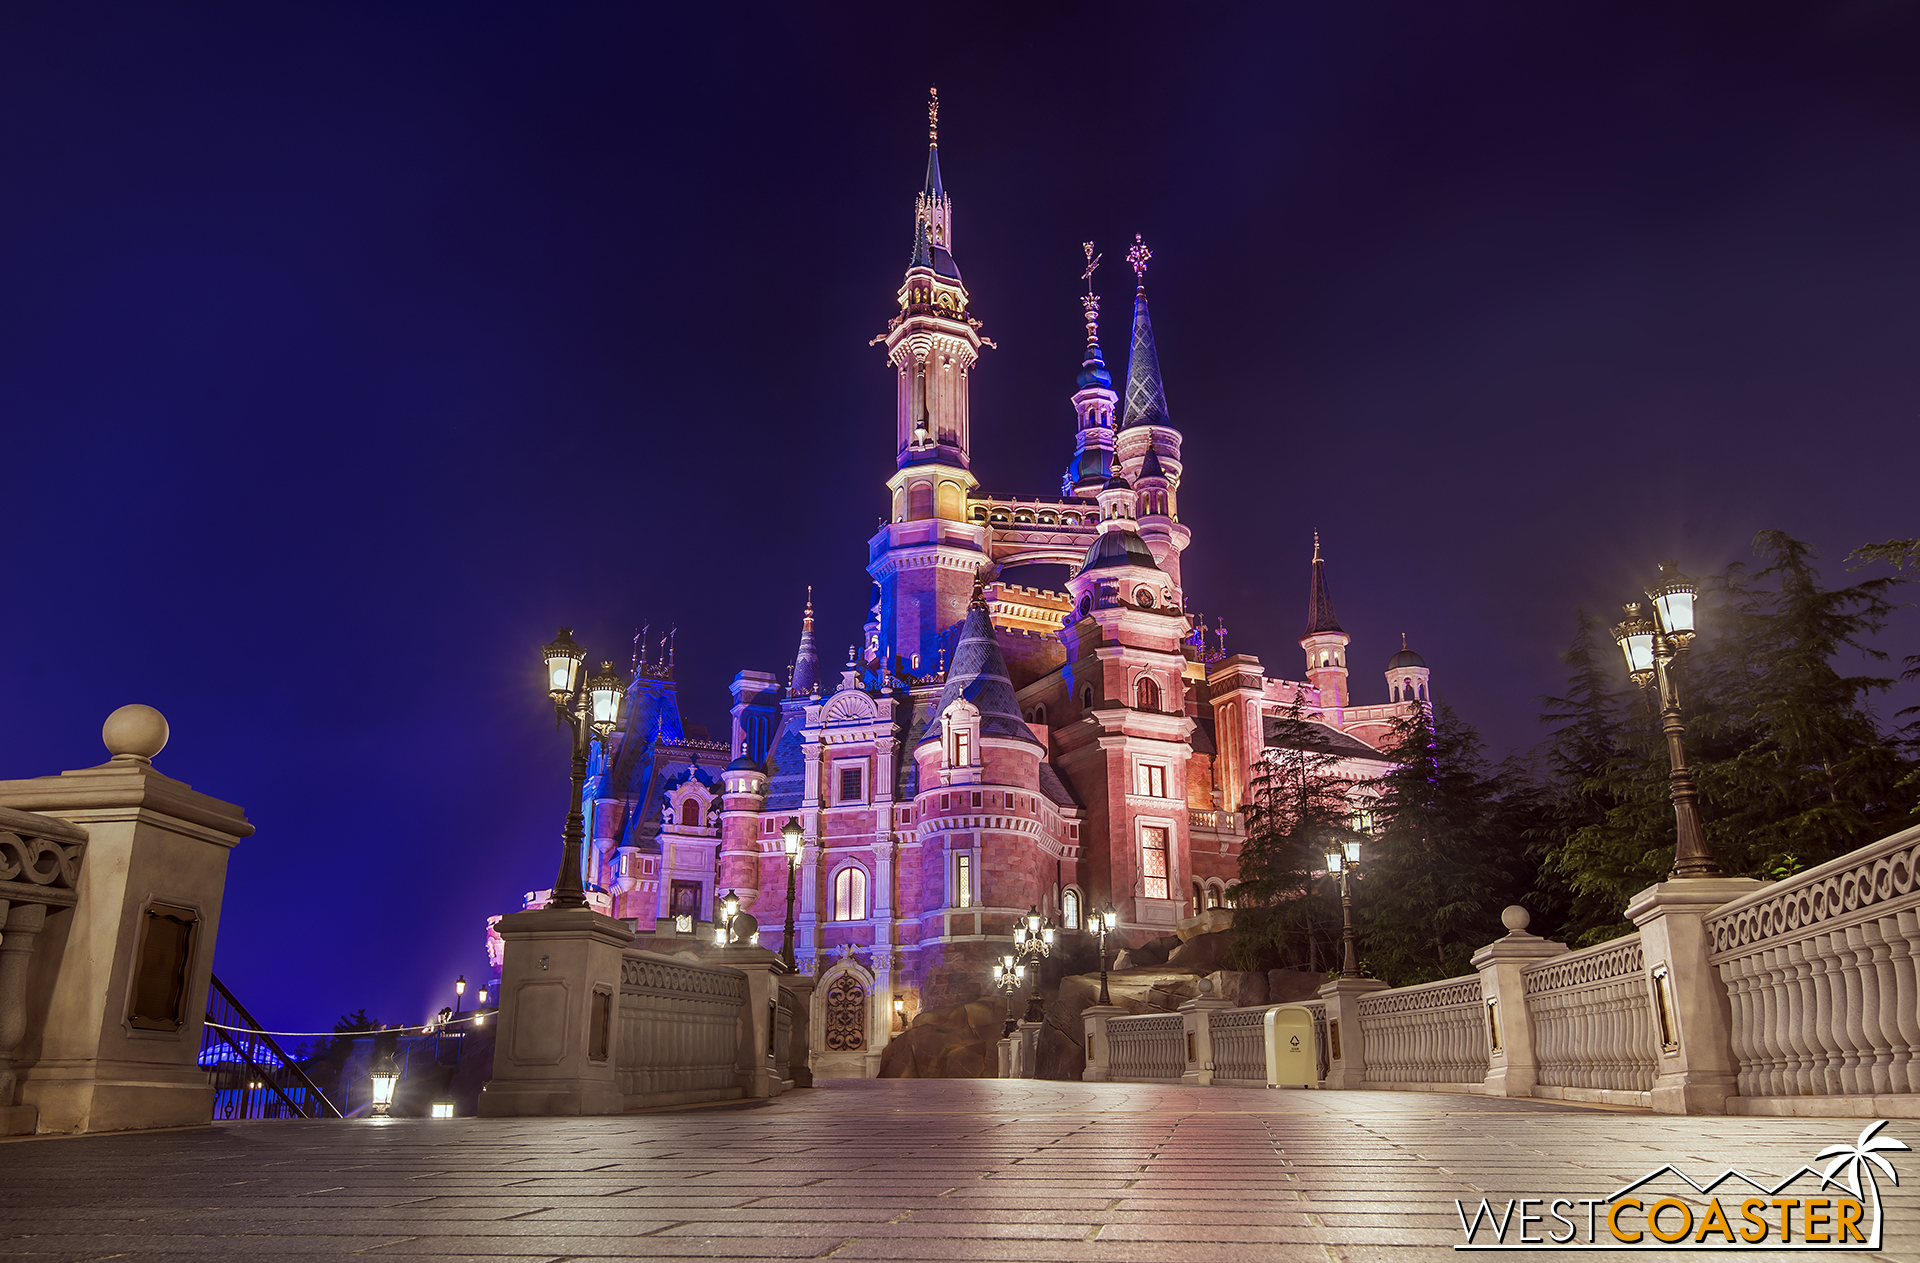 The castle after closing hours.